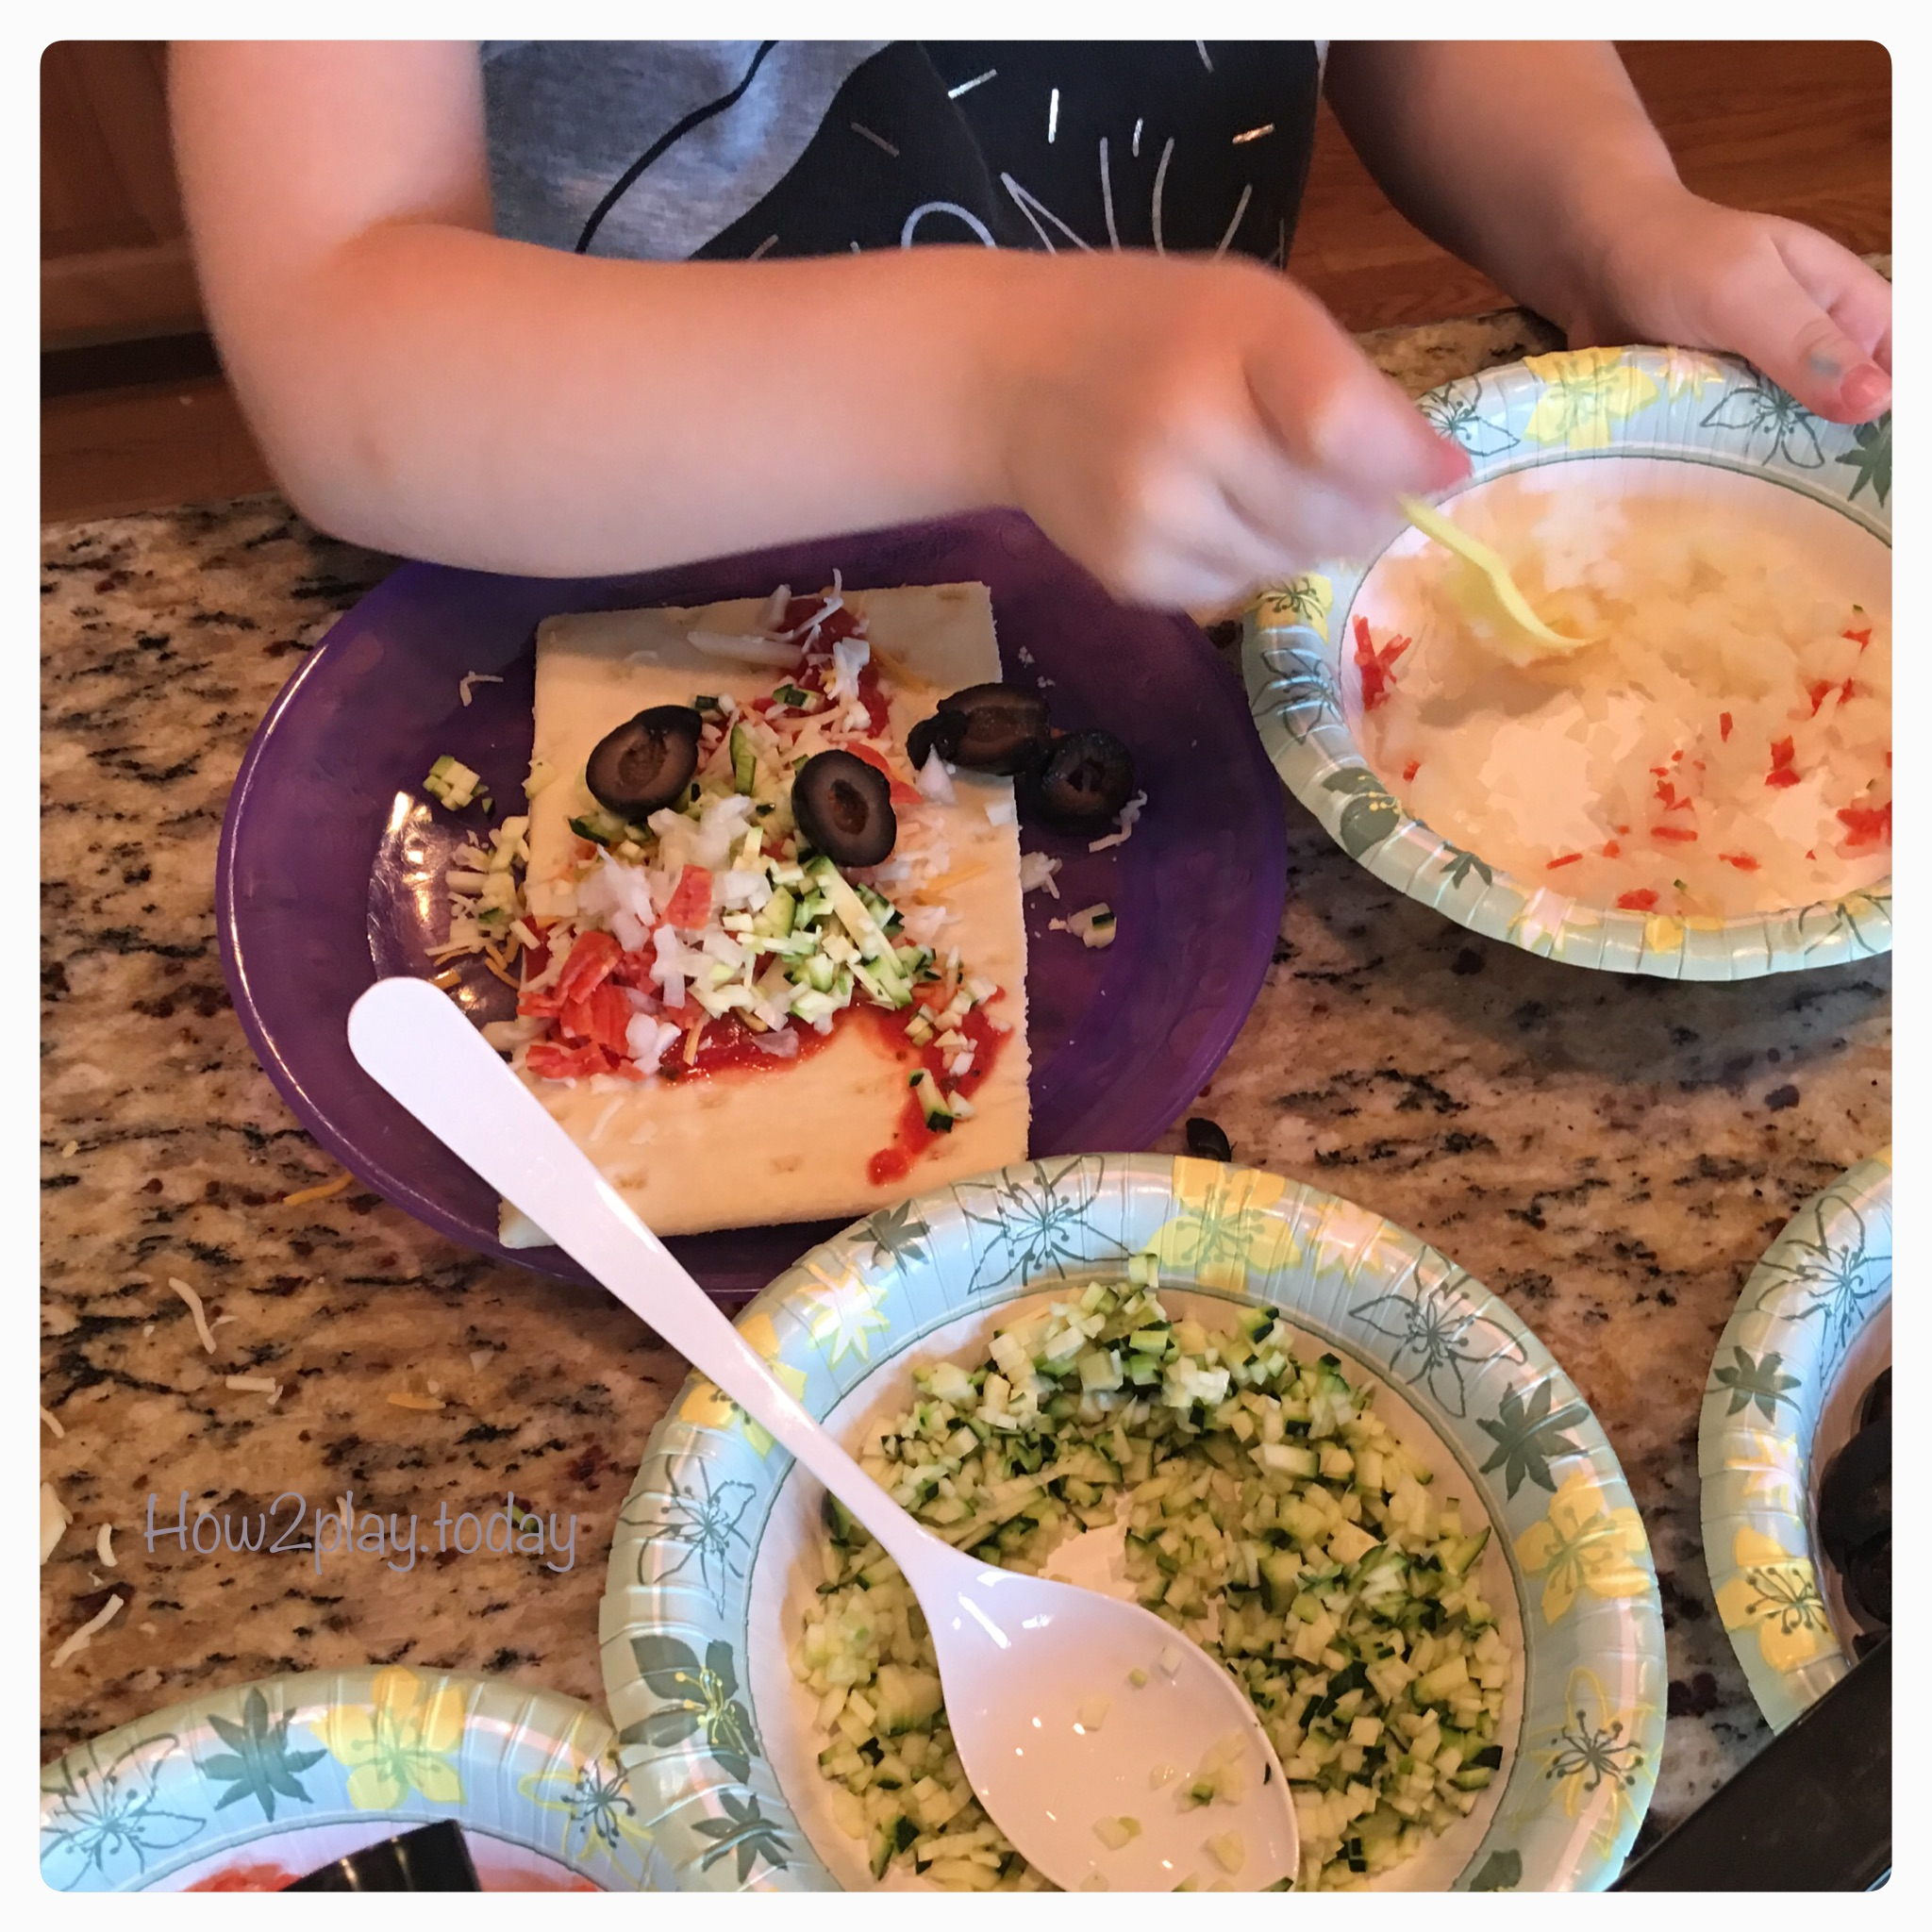 Build Your Own Pizza: we like to do Friday Family Nights so this week we decided to focus on pizza. Getting the kids involved in creating their own dinner, teaches responsibility, patience, and improves listening skills. Plus you can continue the fun and encourage them to do their own dishes.